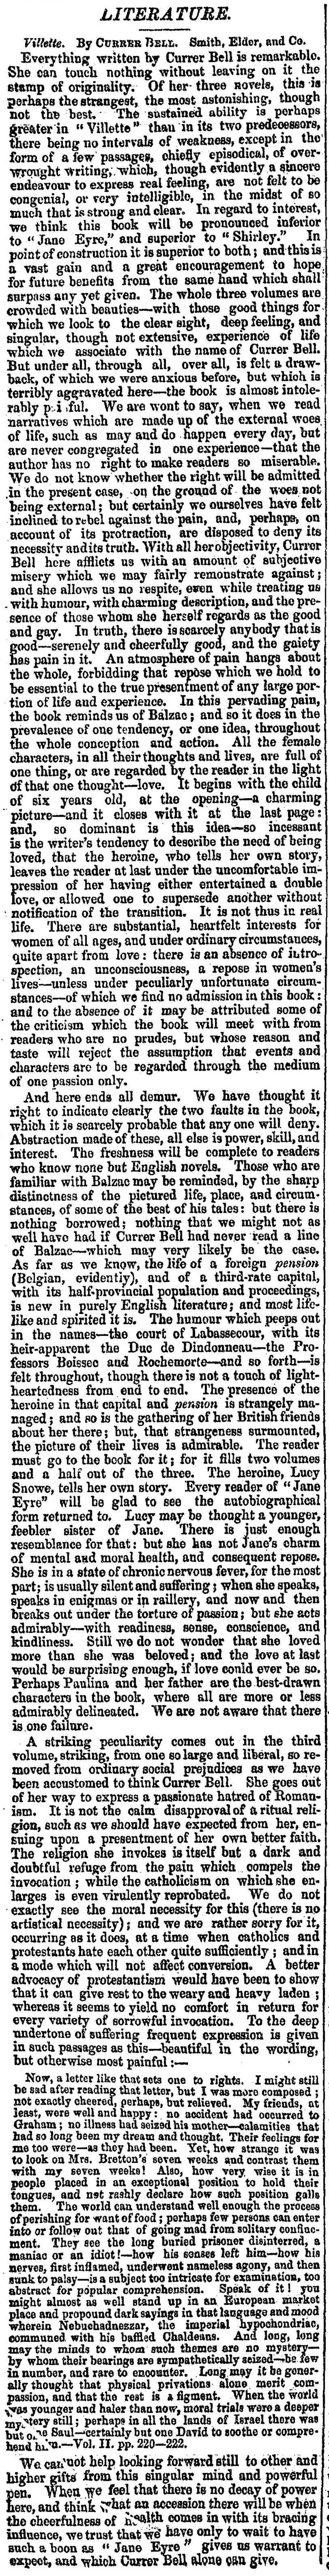 Daily News, Feb. 3, 1853, page 2